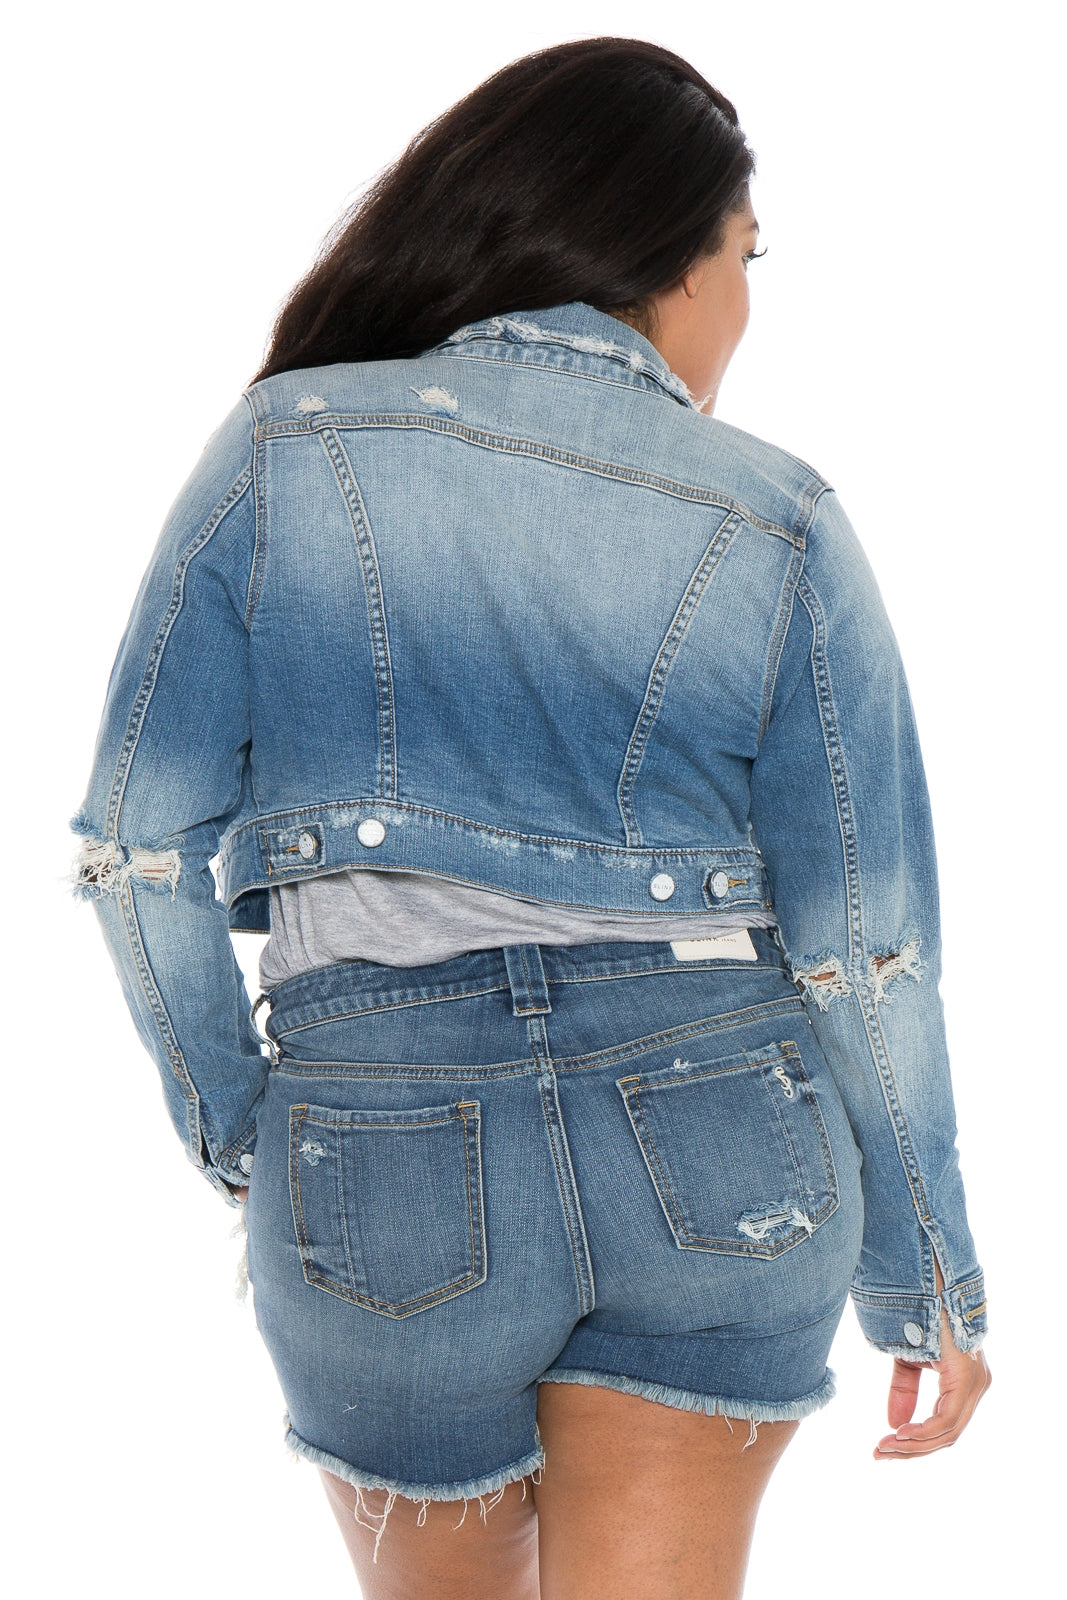 The Crop Denim Jacket - KEZIAH